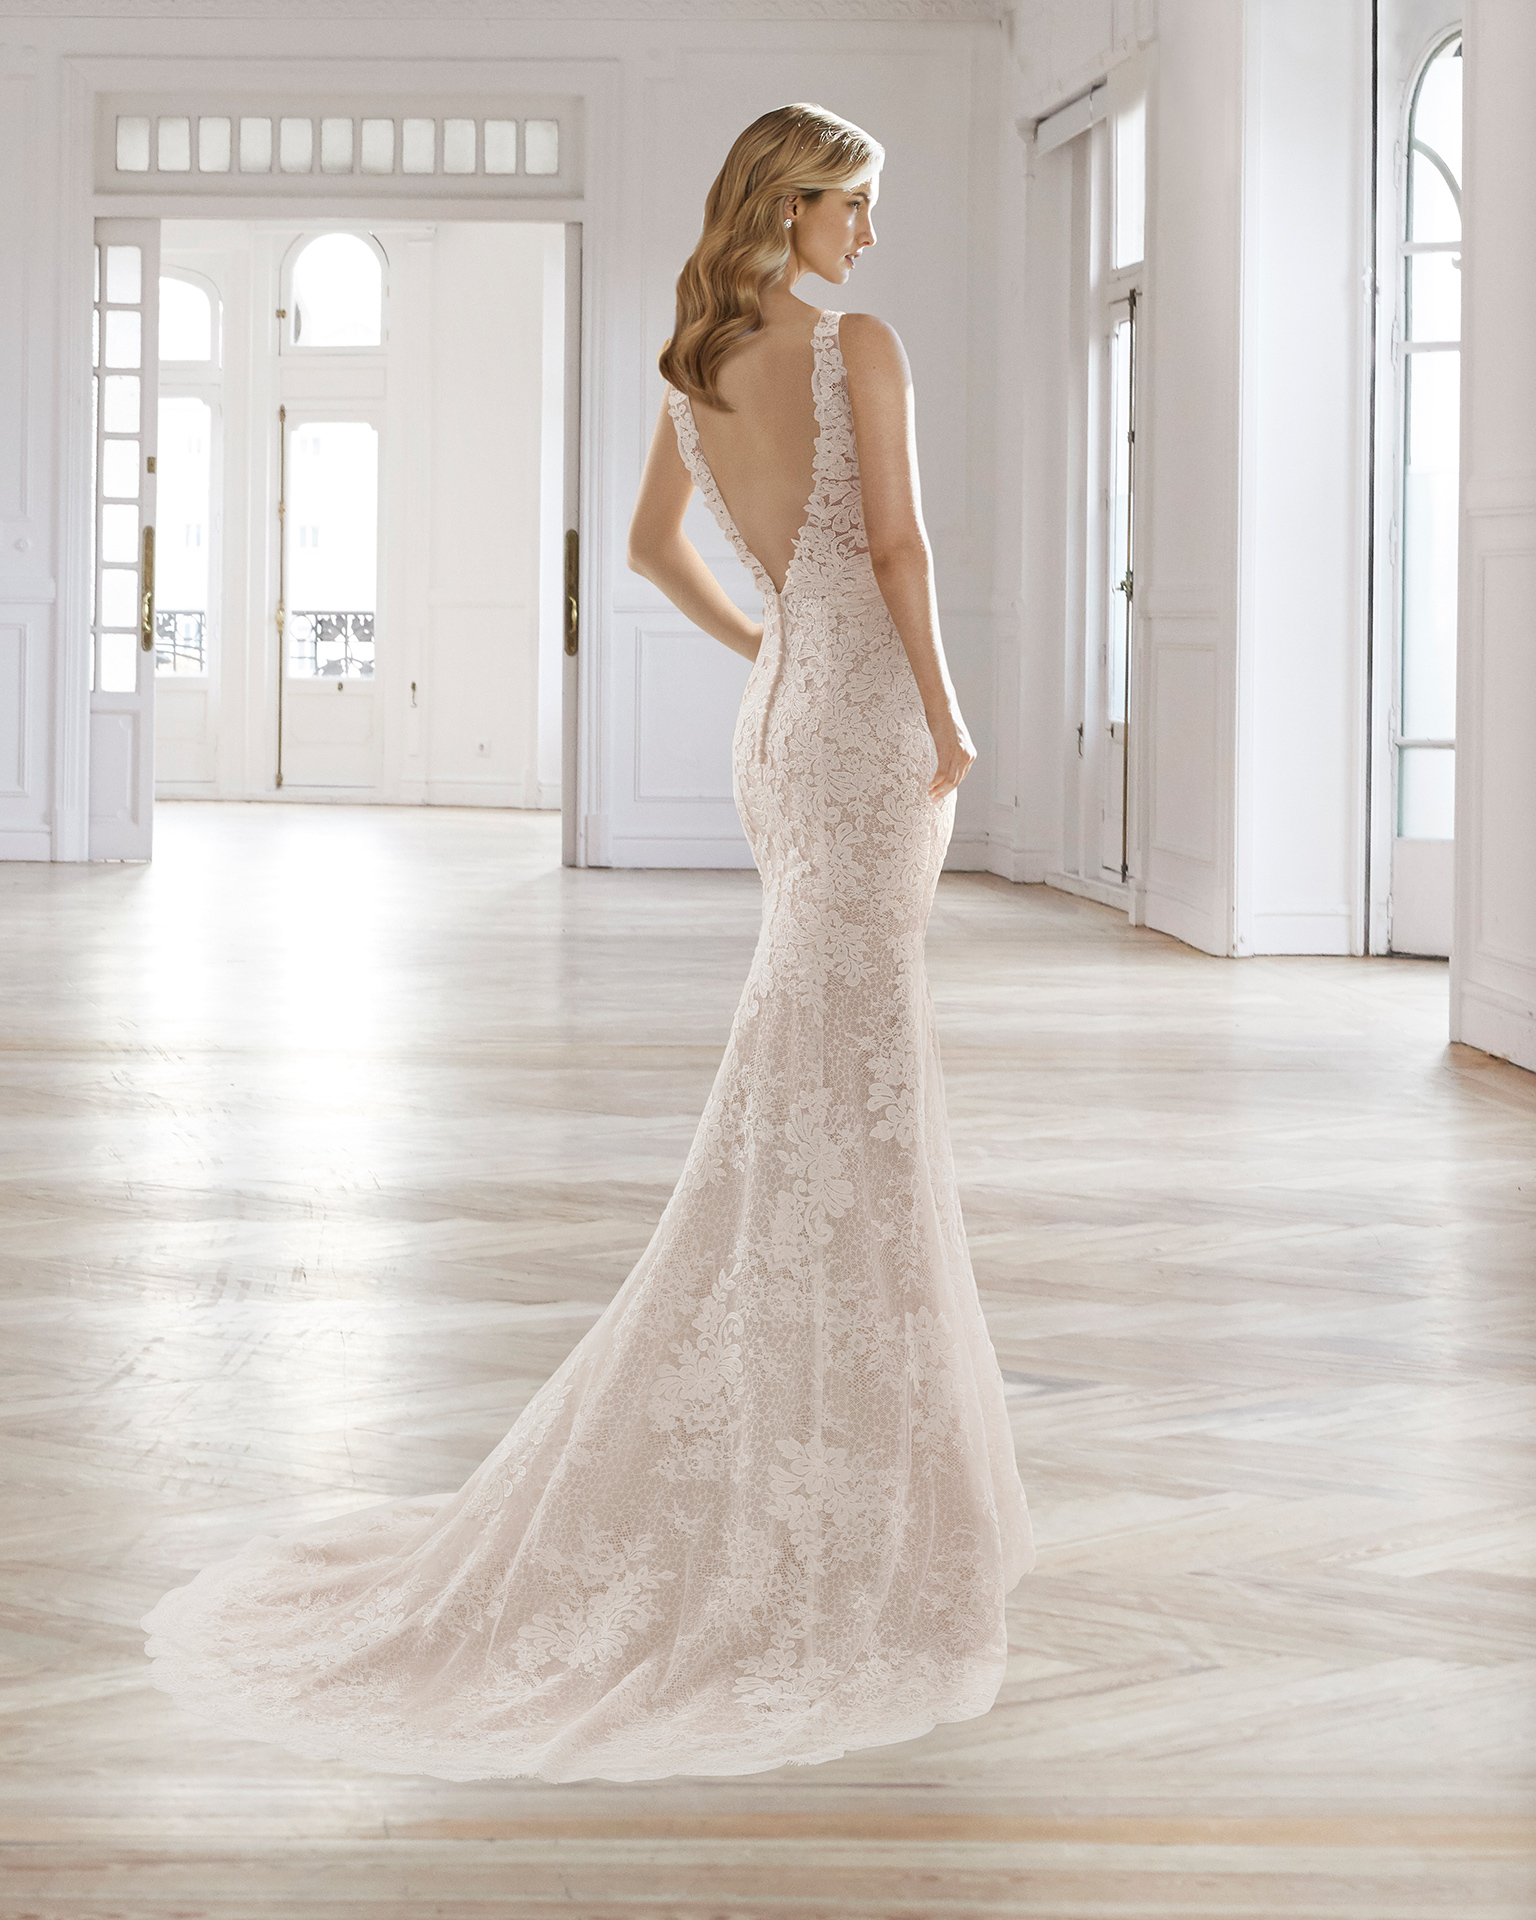 Romantic-style lace wedding dress with V-neckline, low back and front opening, in natural and in nude.